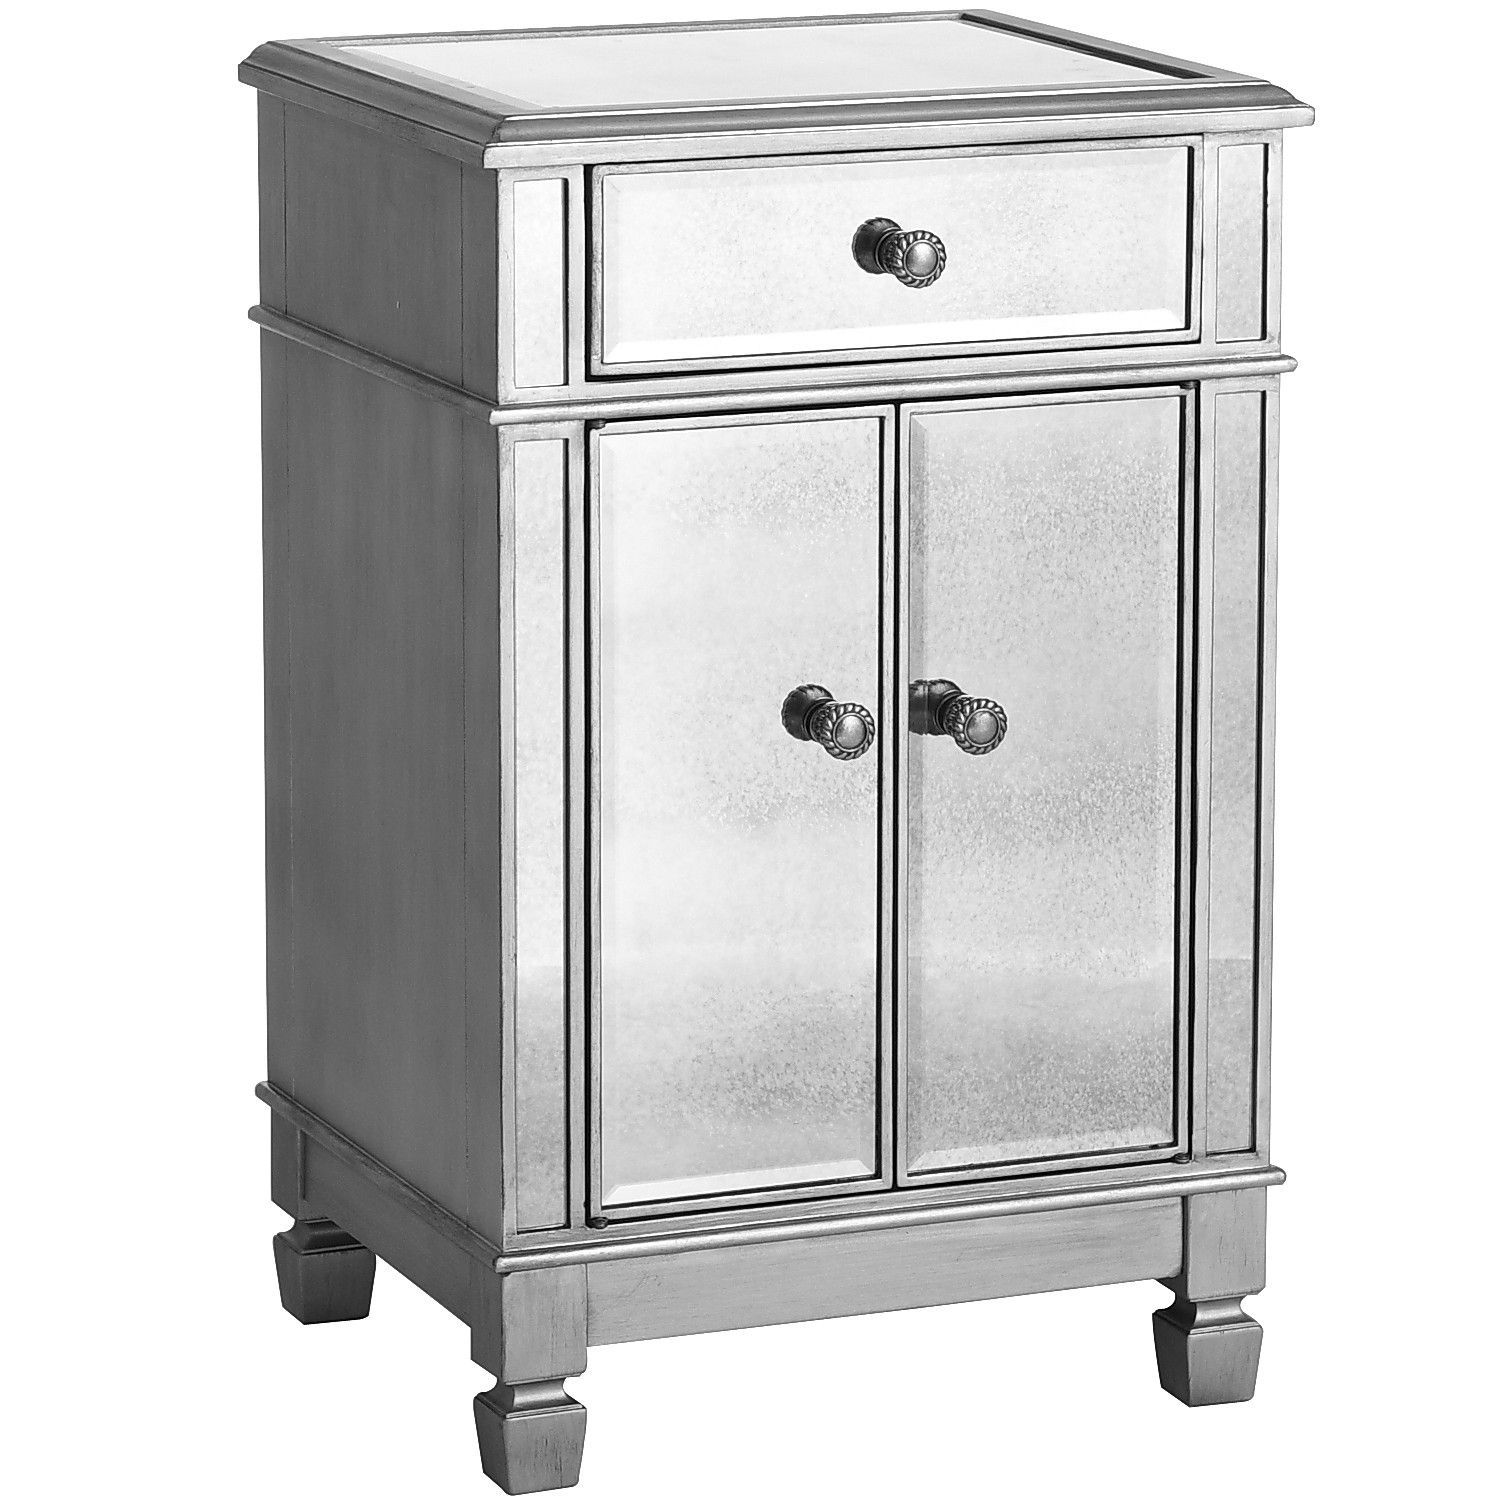 Hayworth Mirrored Silver Bedside Chest Bedside Chest Mirrored Furniture Mirrored Nightstand